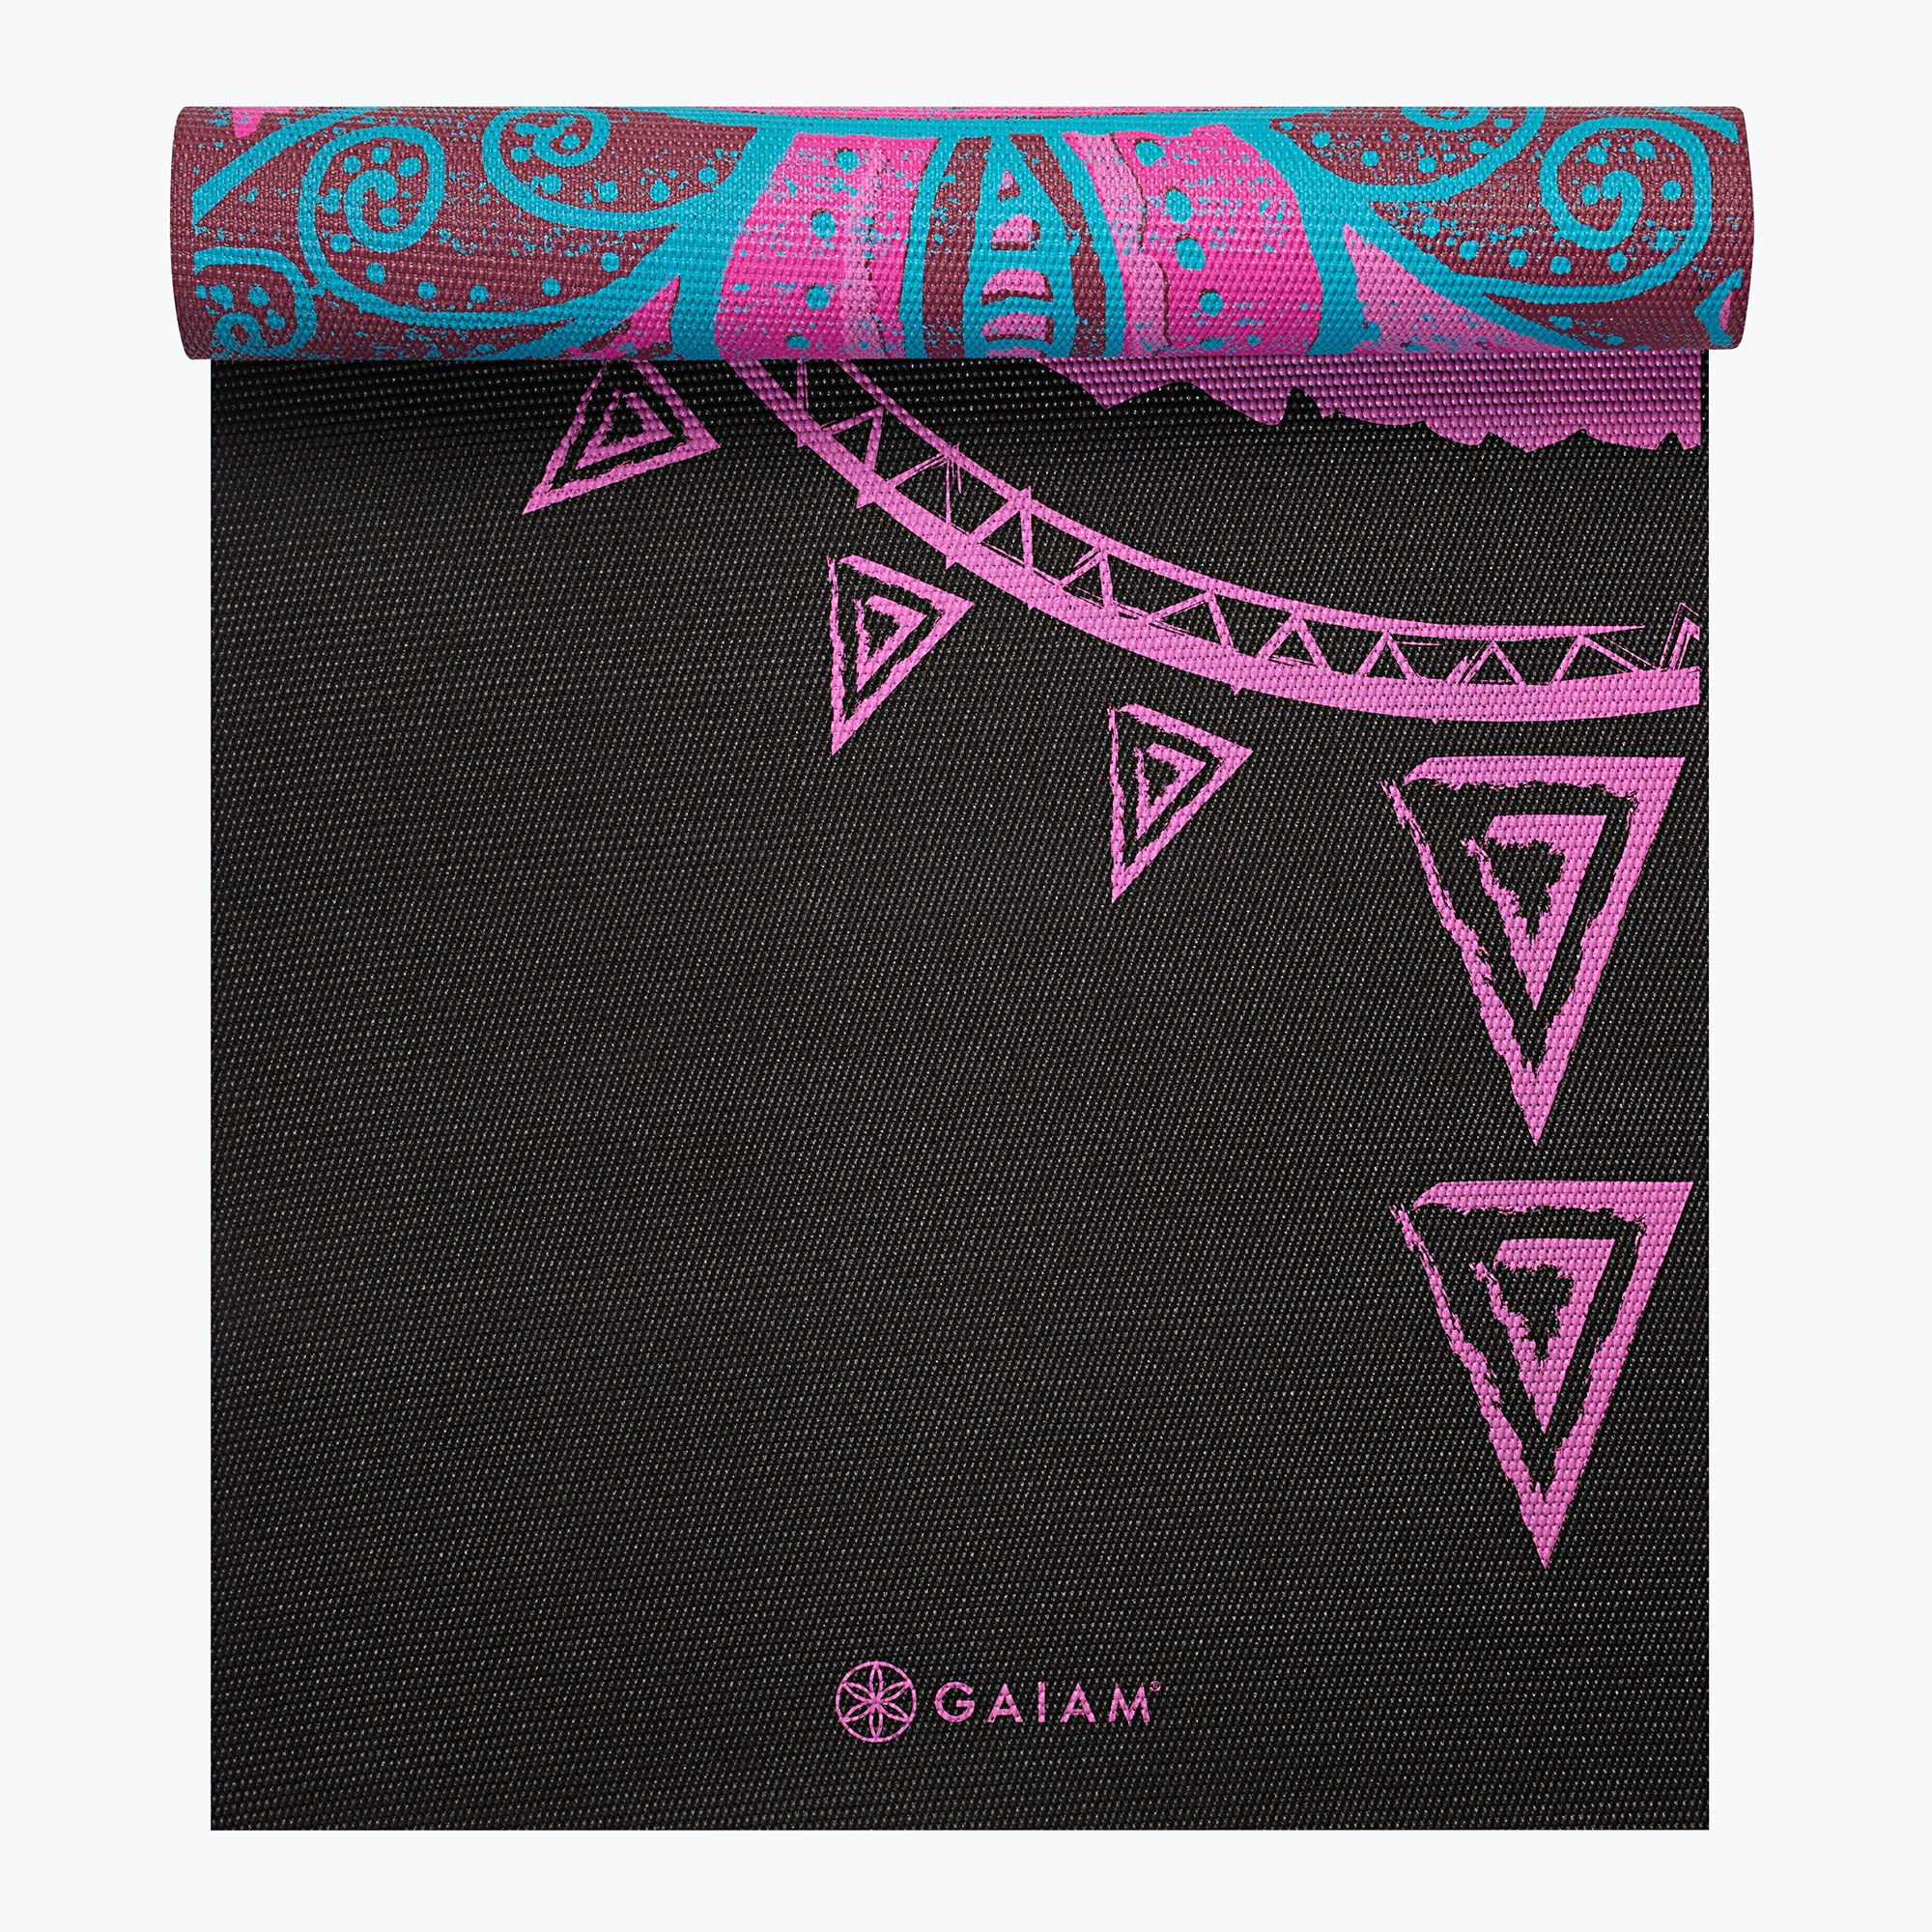 Shop Gaiam yoga mats